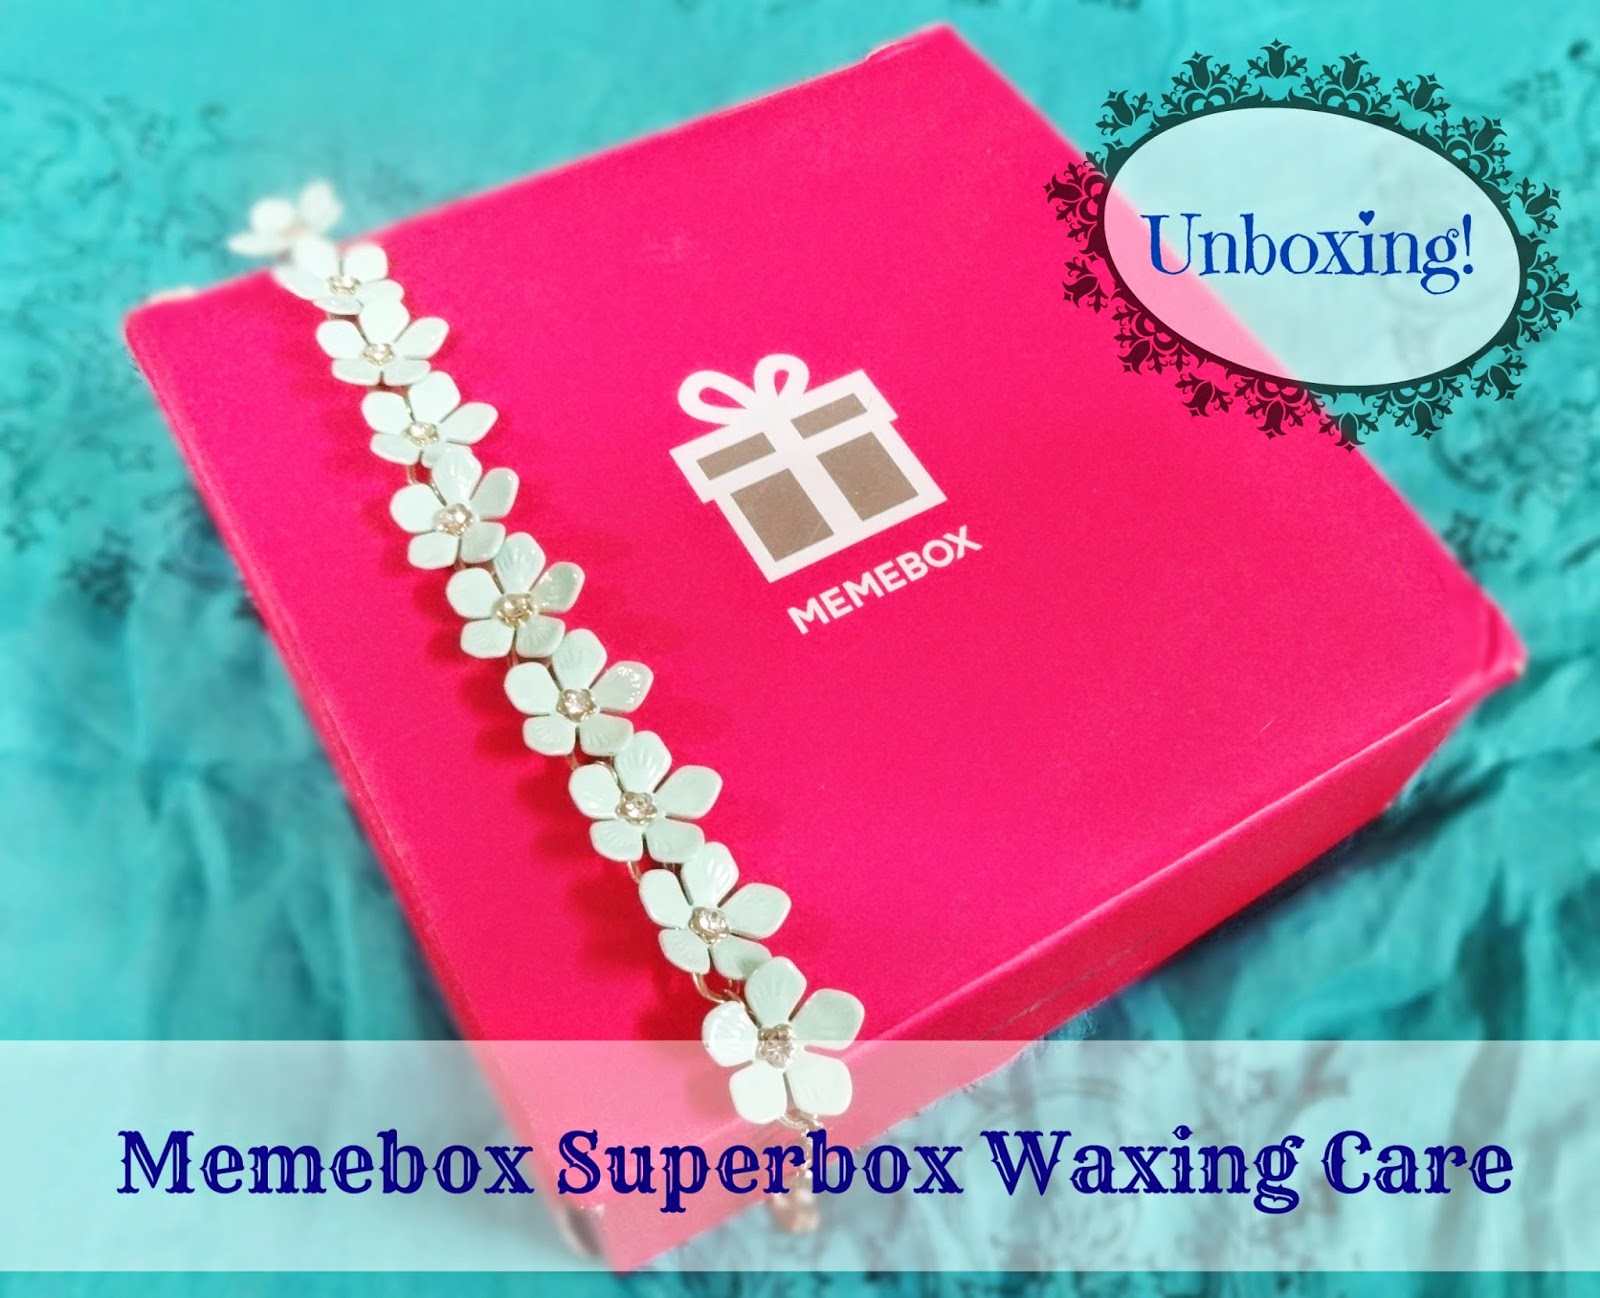 Memebox Superbox Waxing Care